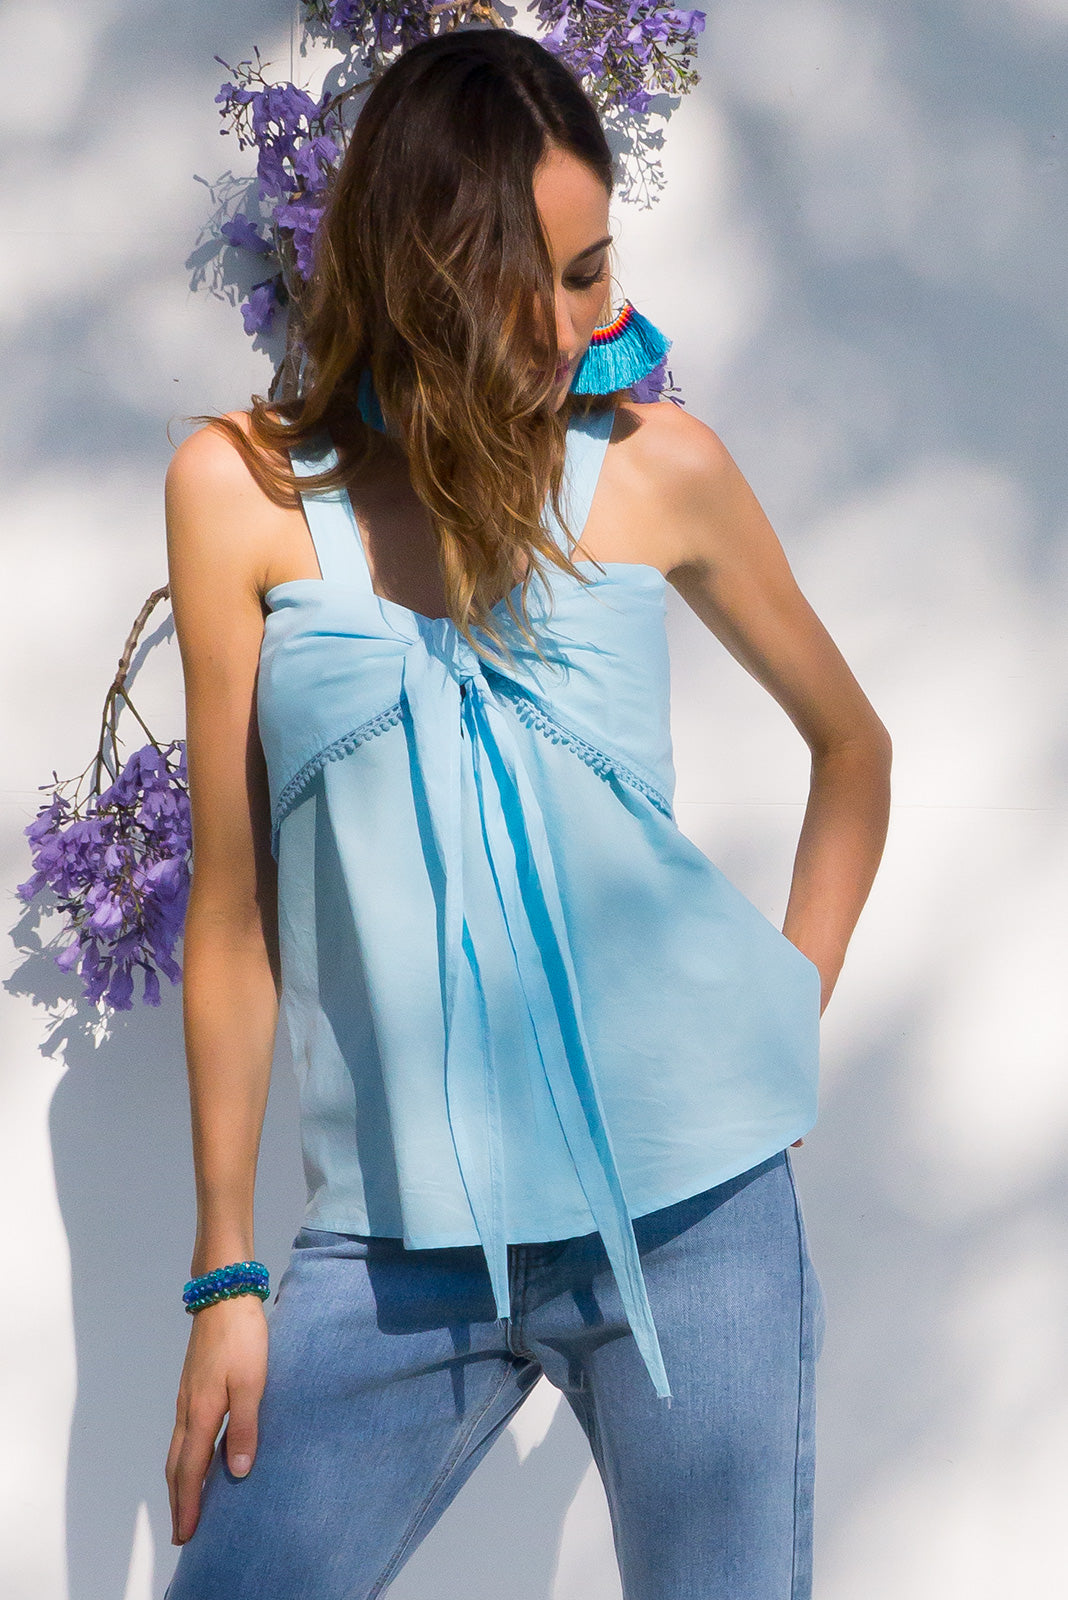 Emmylu Sky Blue cotton top reversible with a tie front